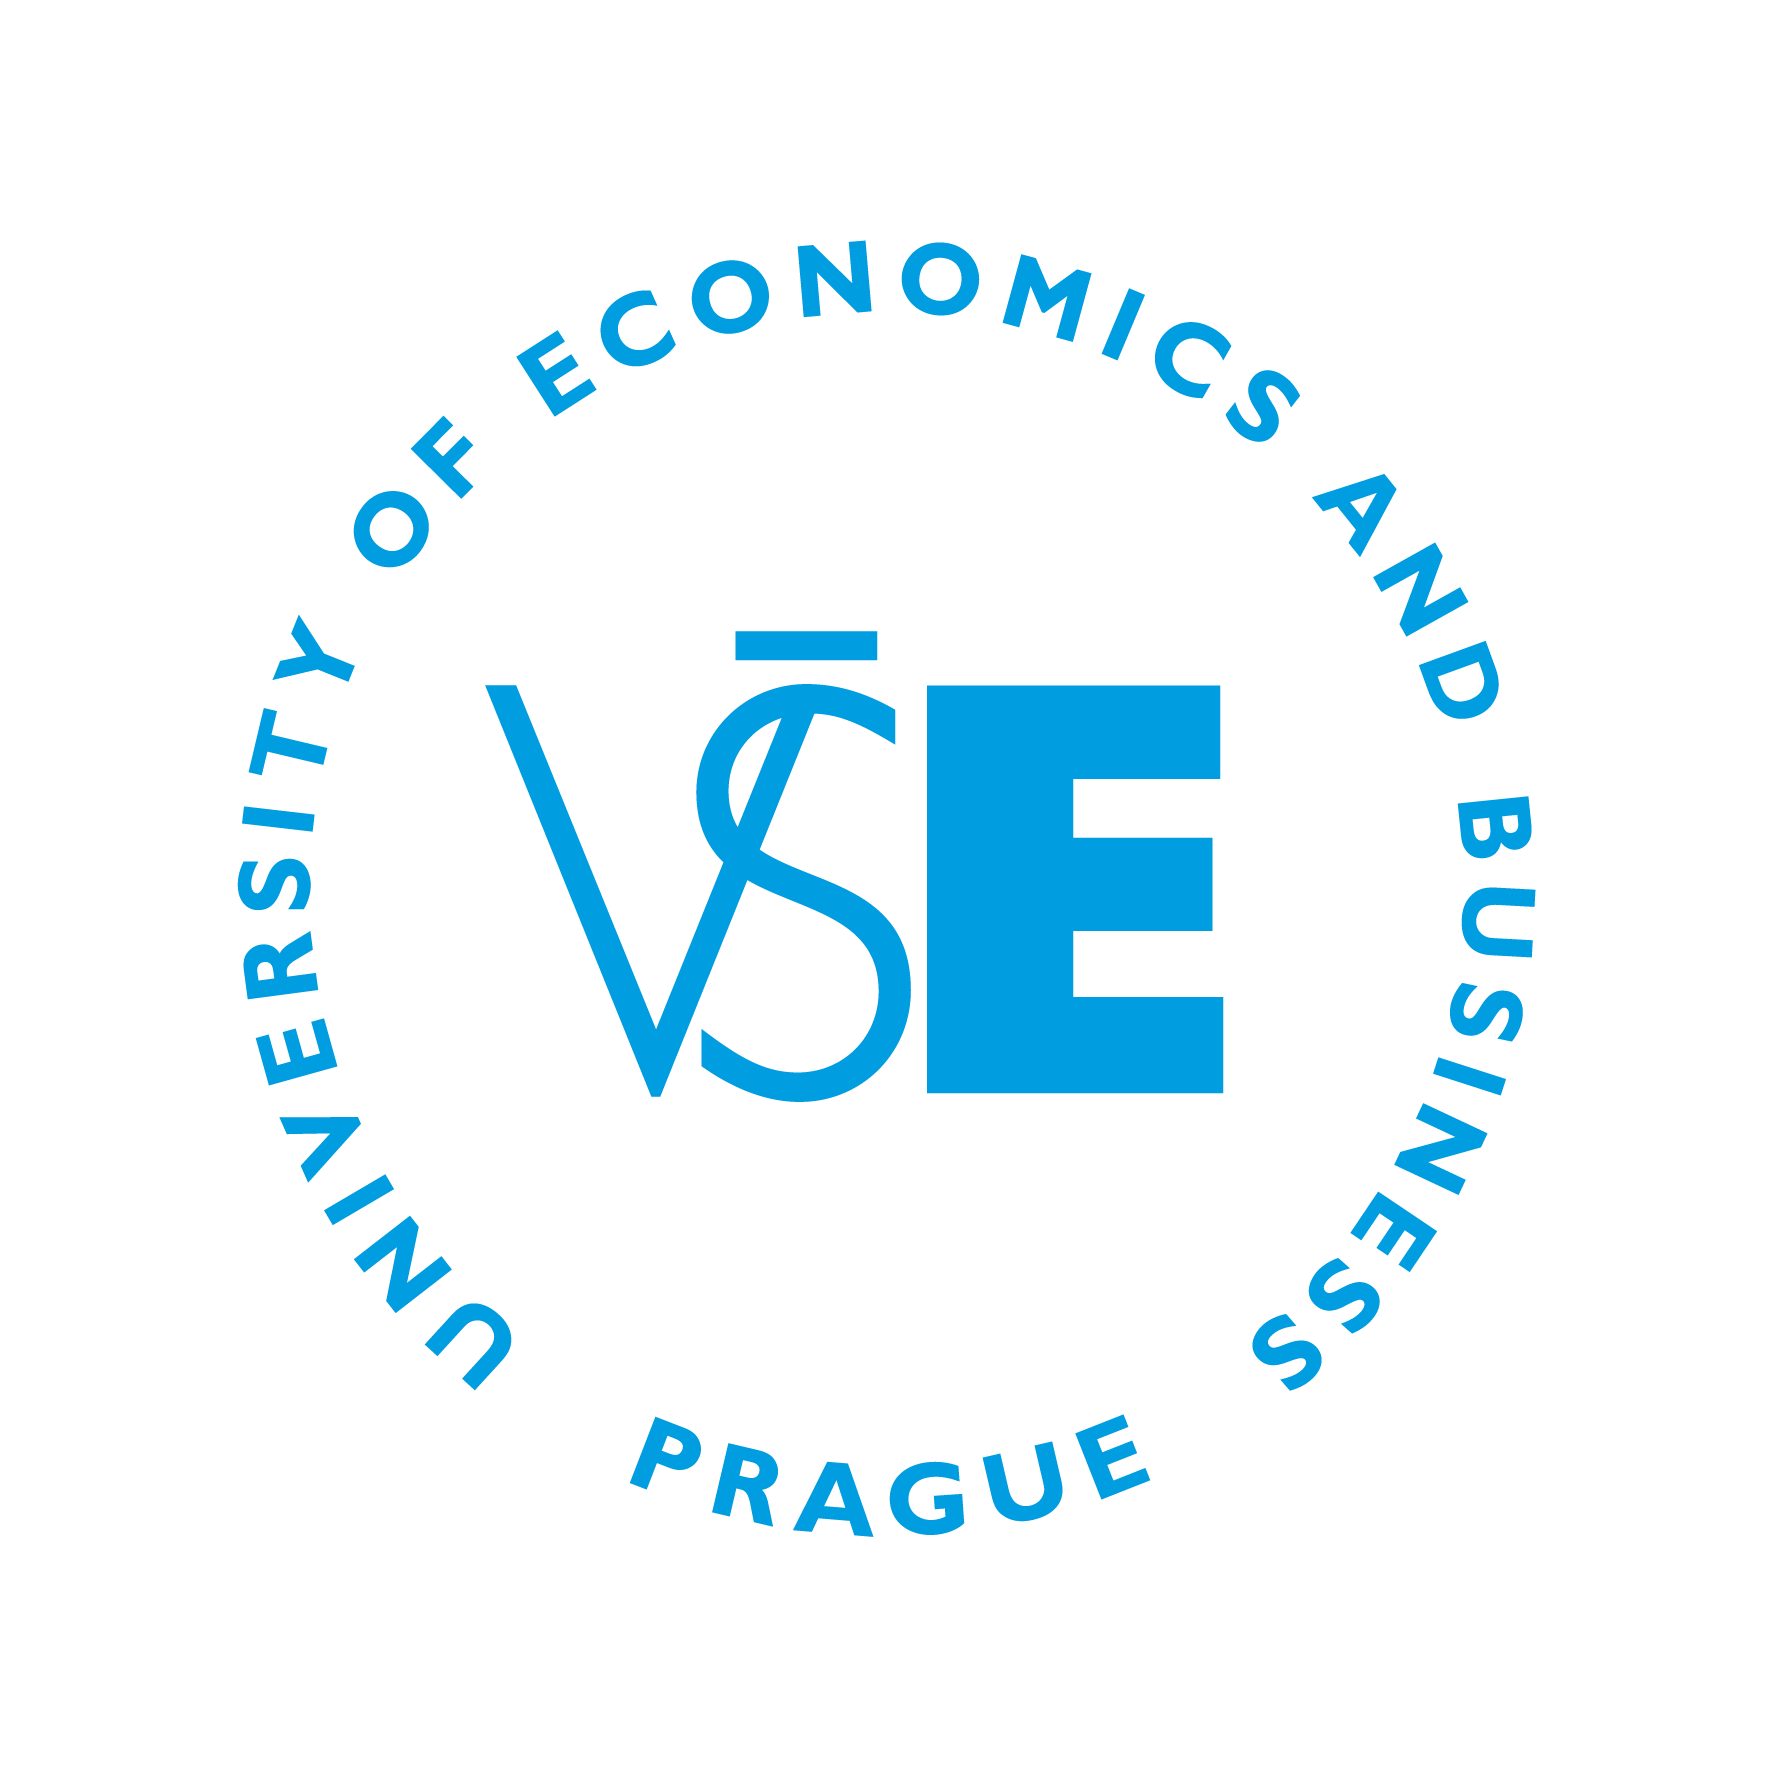 VŠE - logo blue - circle - English